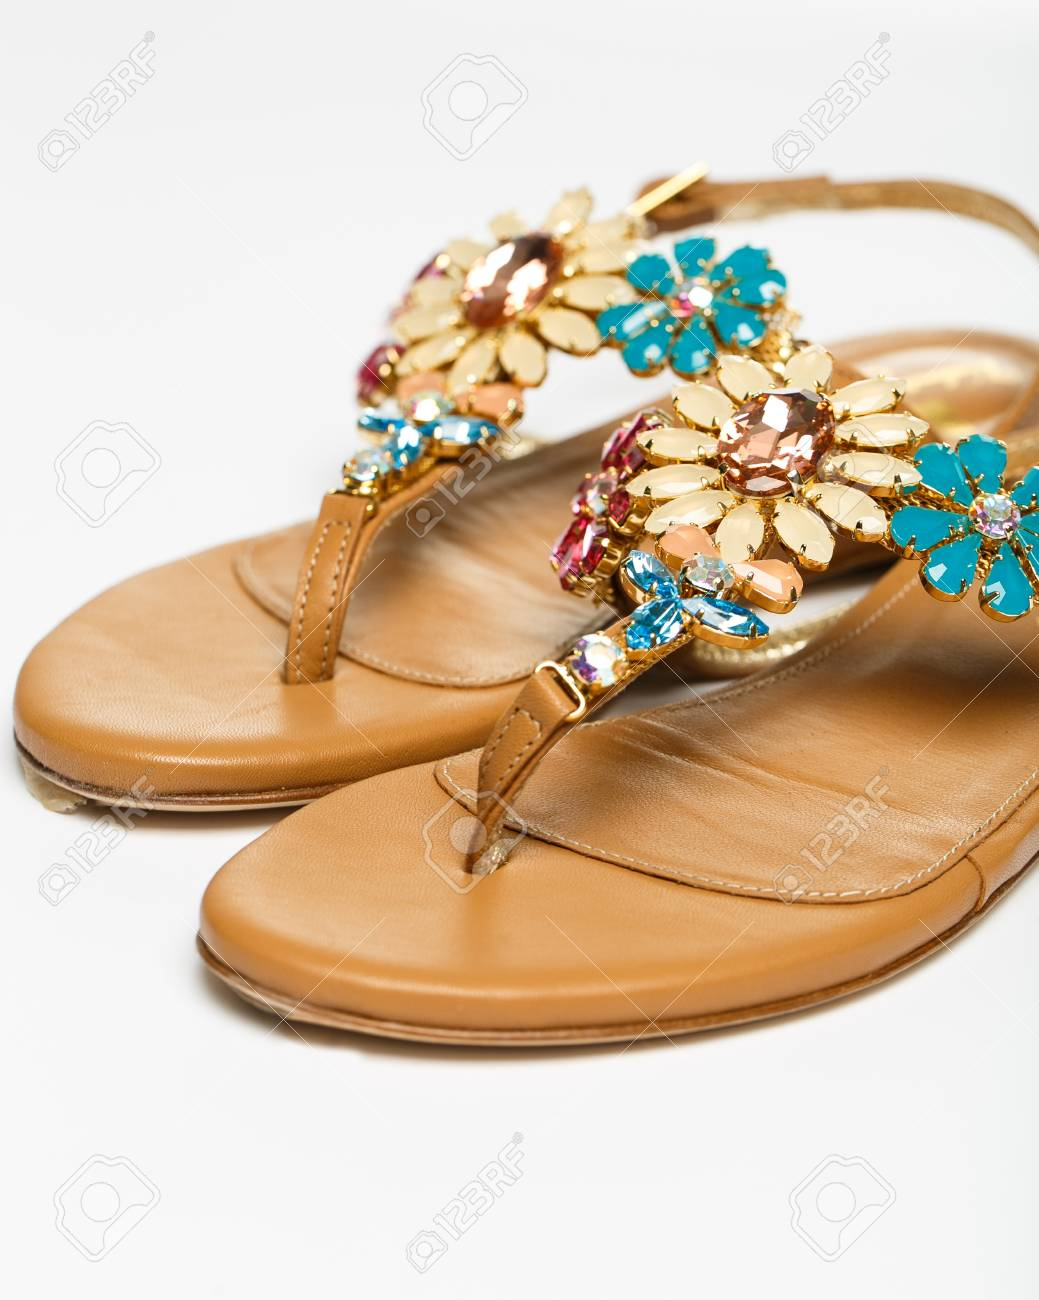 7a0e290bf69 The woman summer sandals isolated on a white background Stock Photo -  40269431